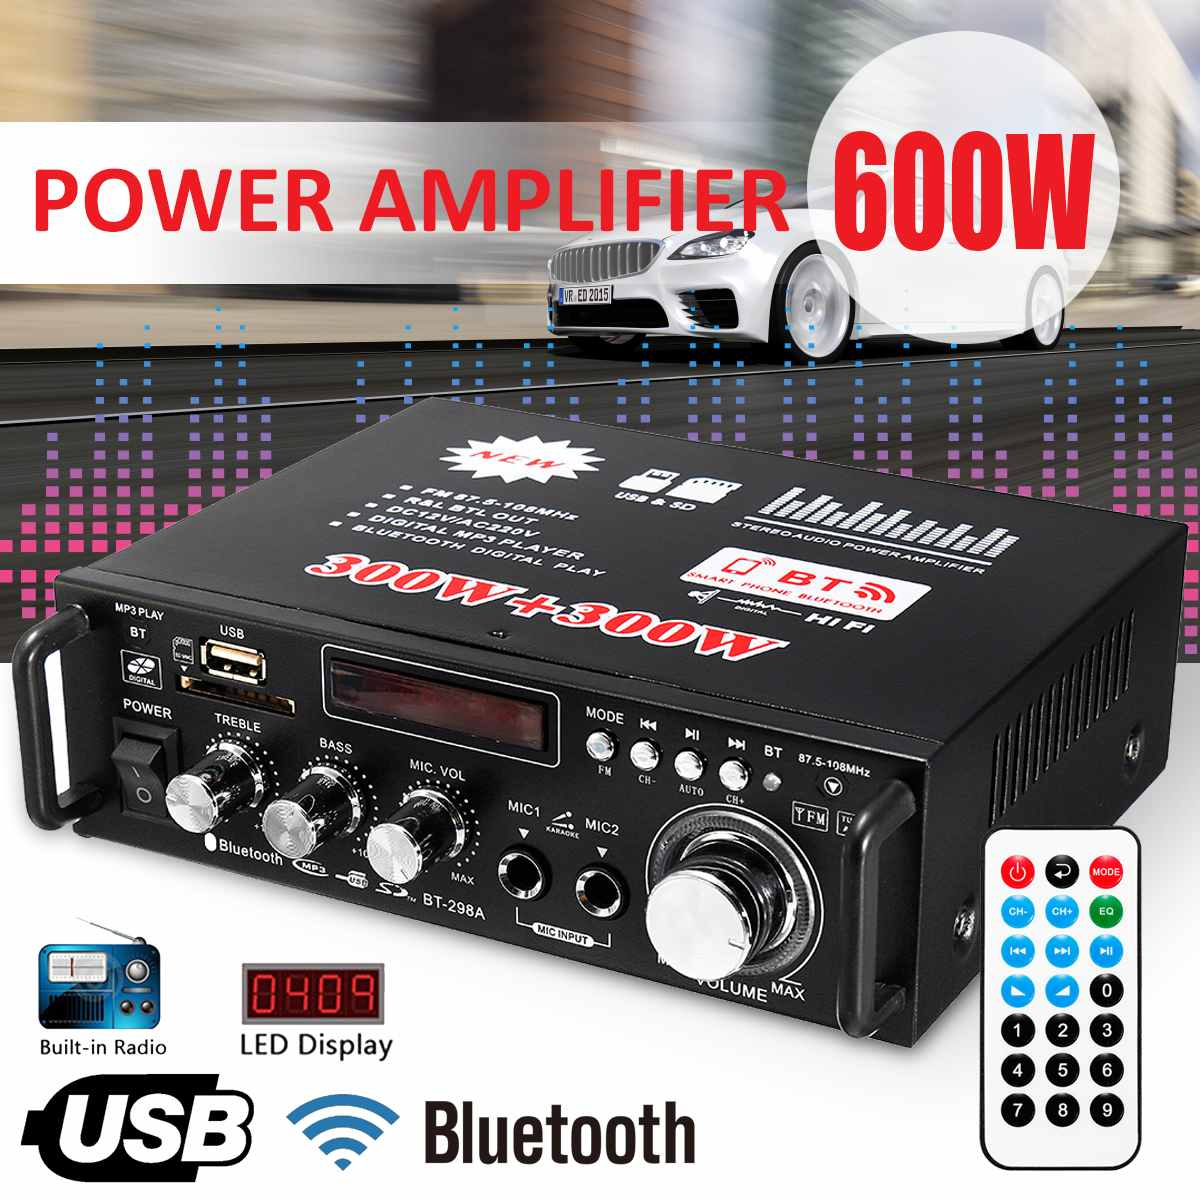 Smart 12v/ 220v Bt-298a 2ch Lcd Display Digital Hifi Audio Stereo Power Amplifier Bluetooth Fm Radio Car Home 600w With Remote Control Excellent Quality